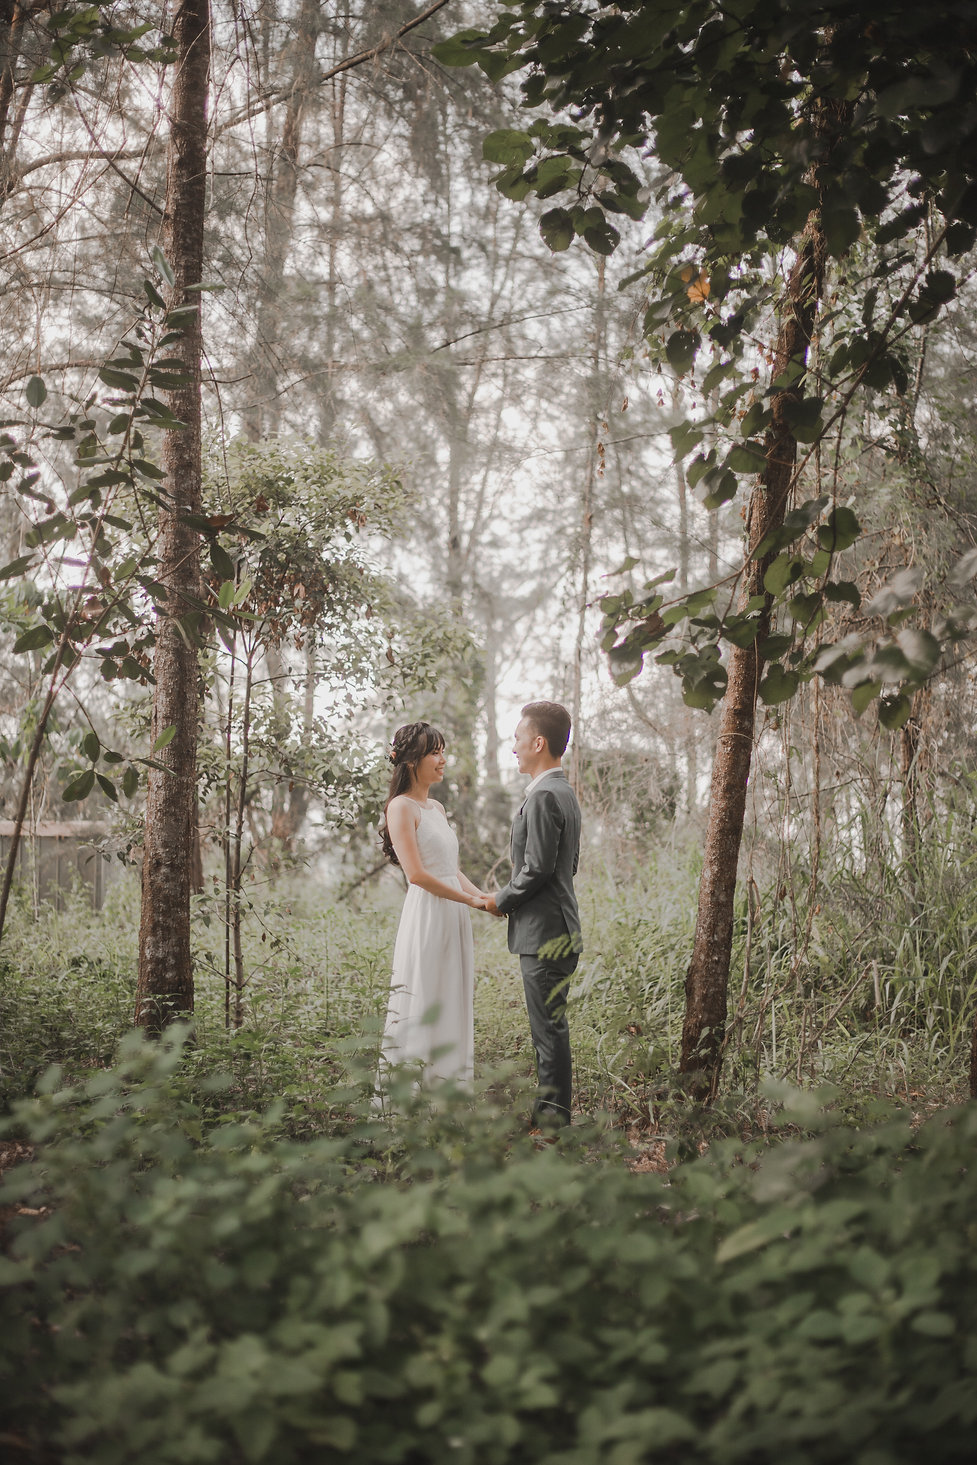 Nature outdoor forest wedding photoshoot